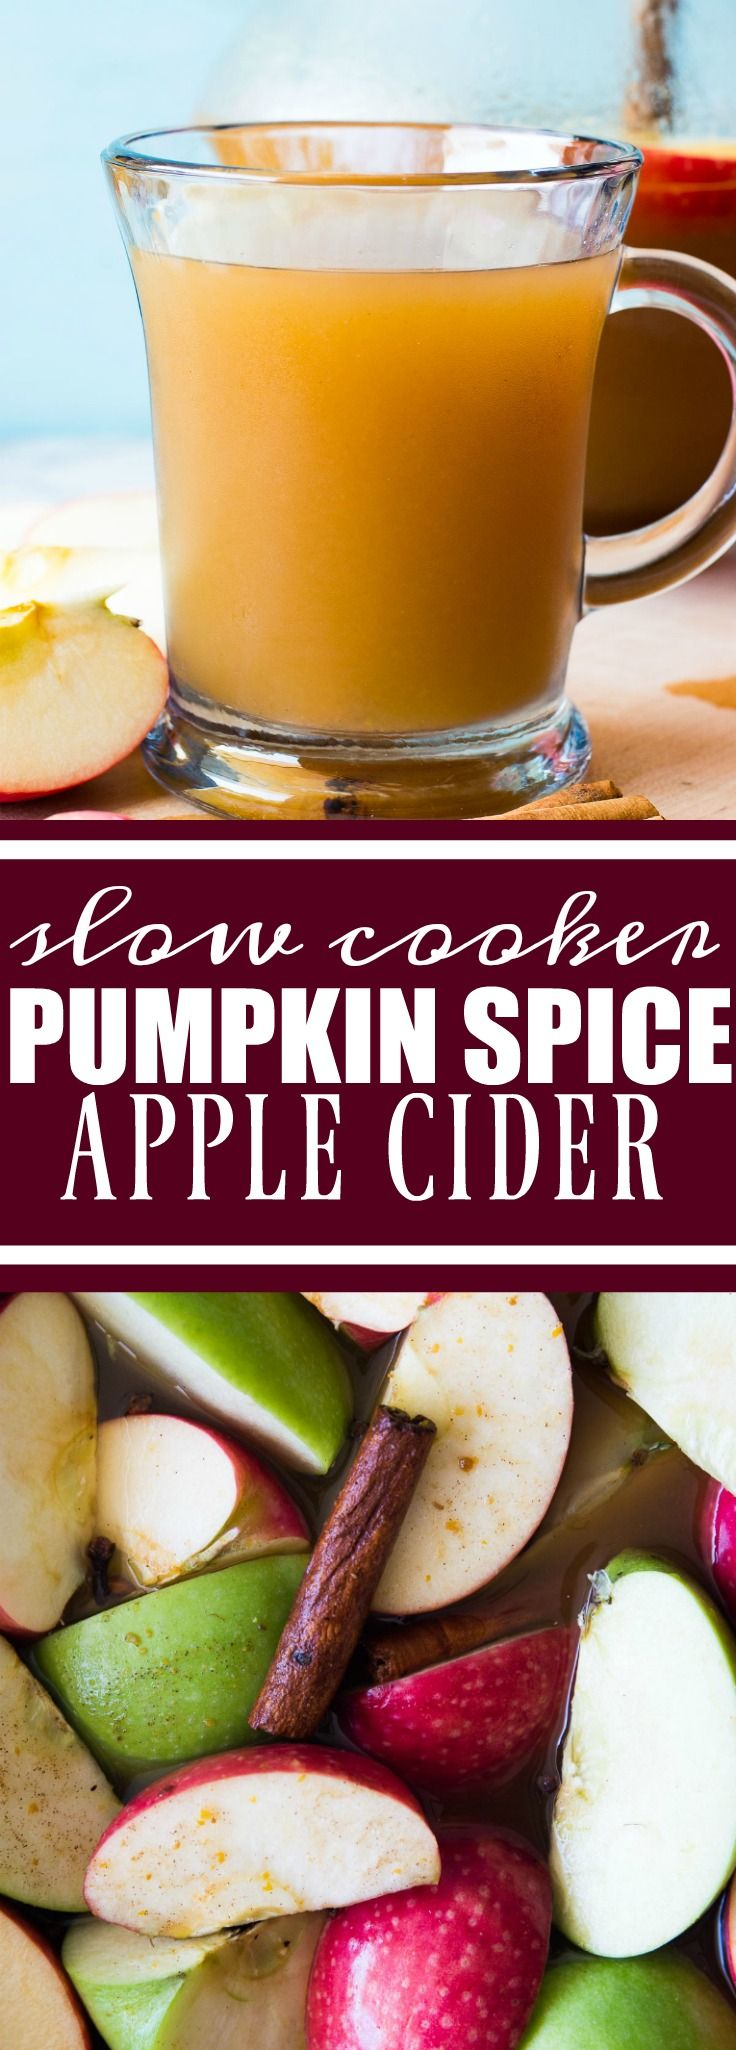 {Slow Cooker} Pumpkin Spice Apple Cider #falldrinks